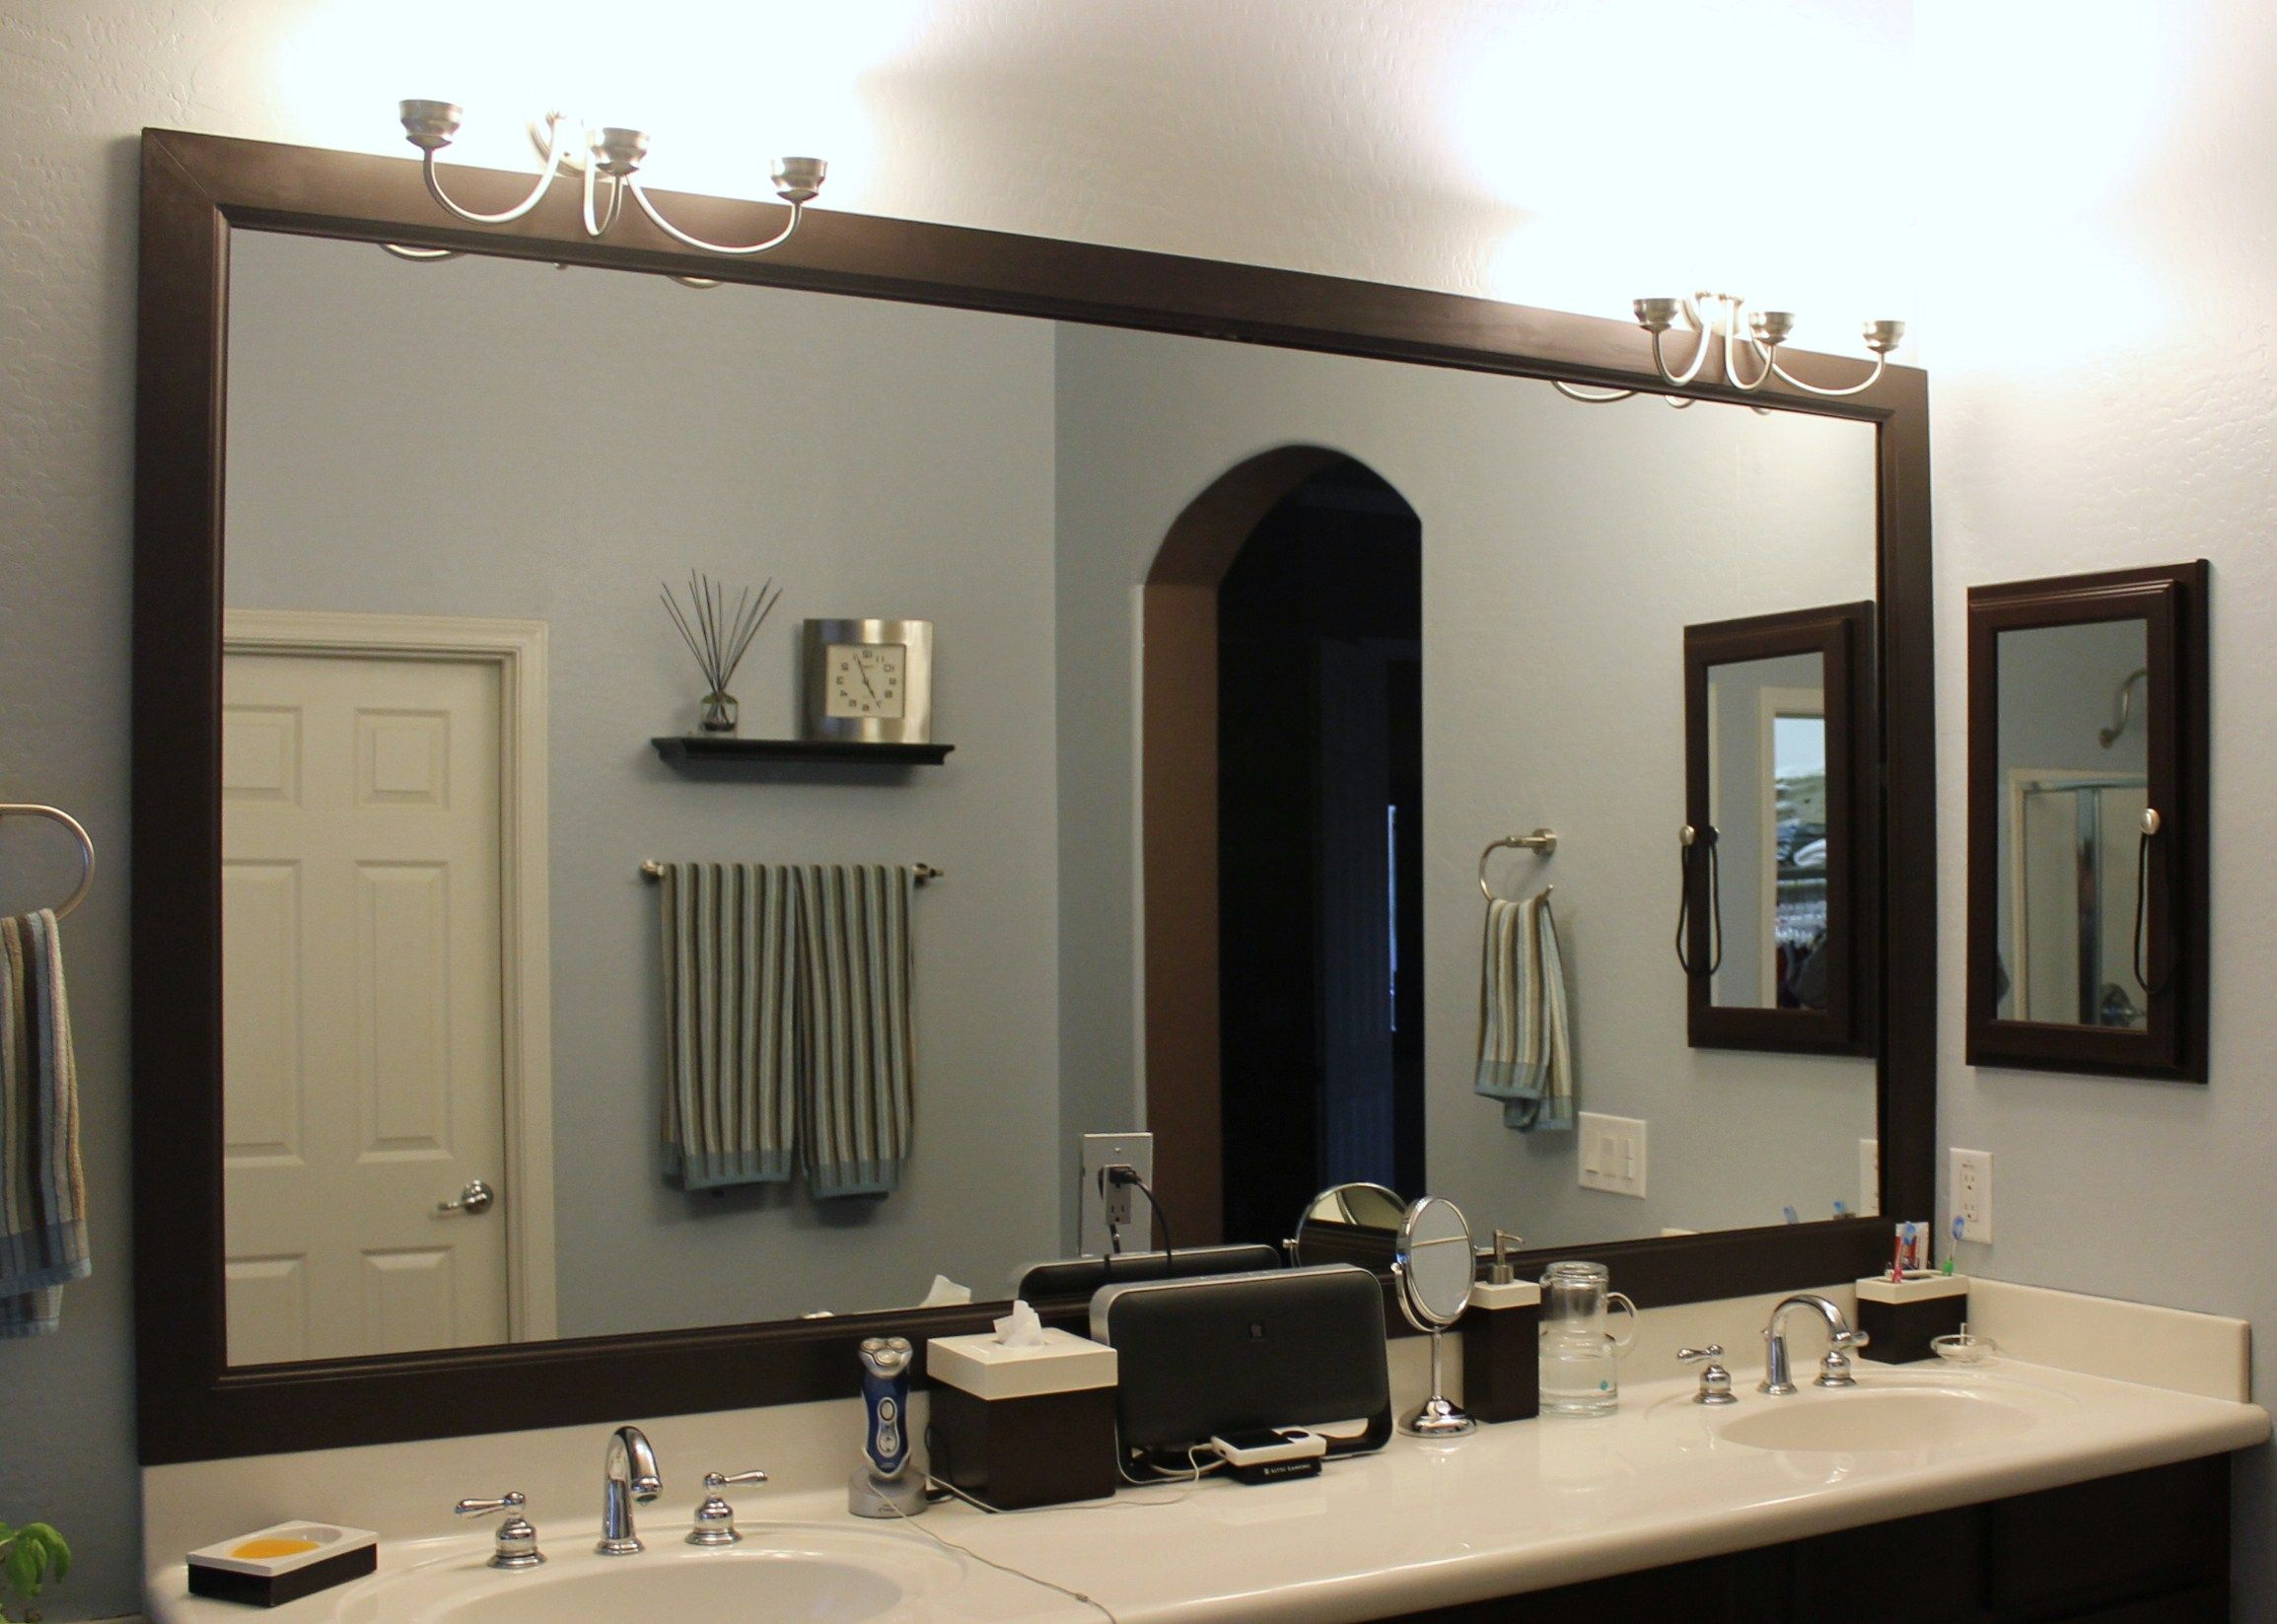 28+ [ Framing Bathroom Mirror Ideas ] | Ideas For Framing A Mirror ...